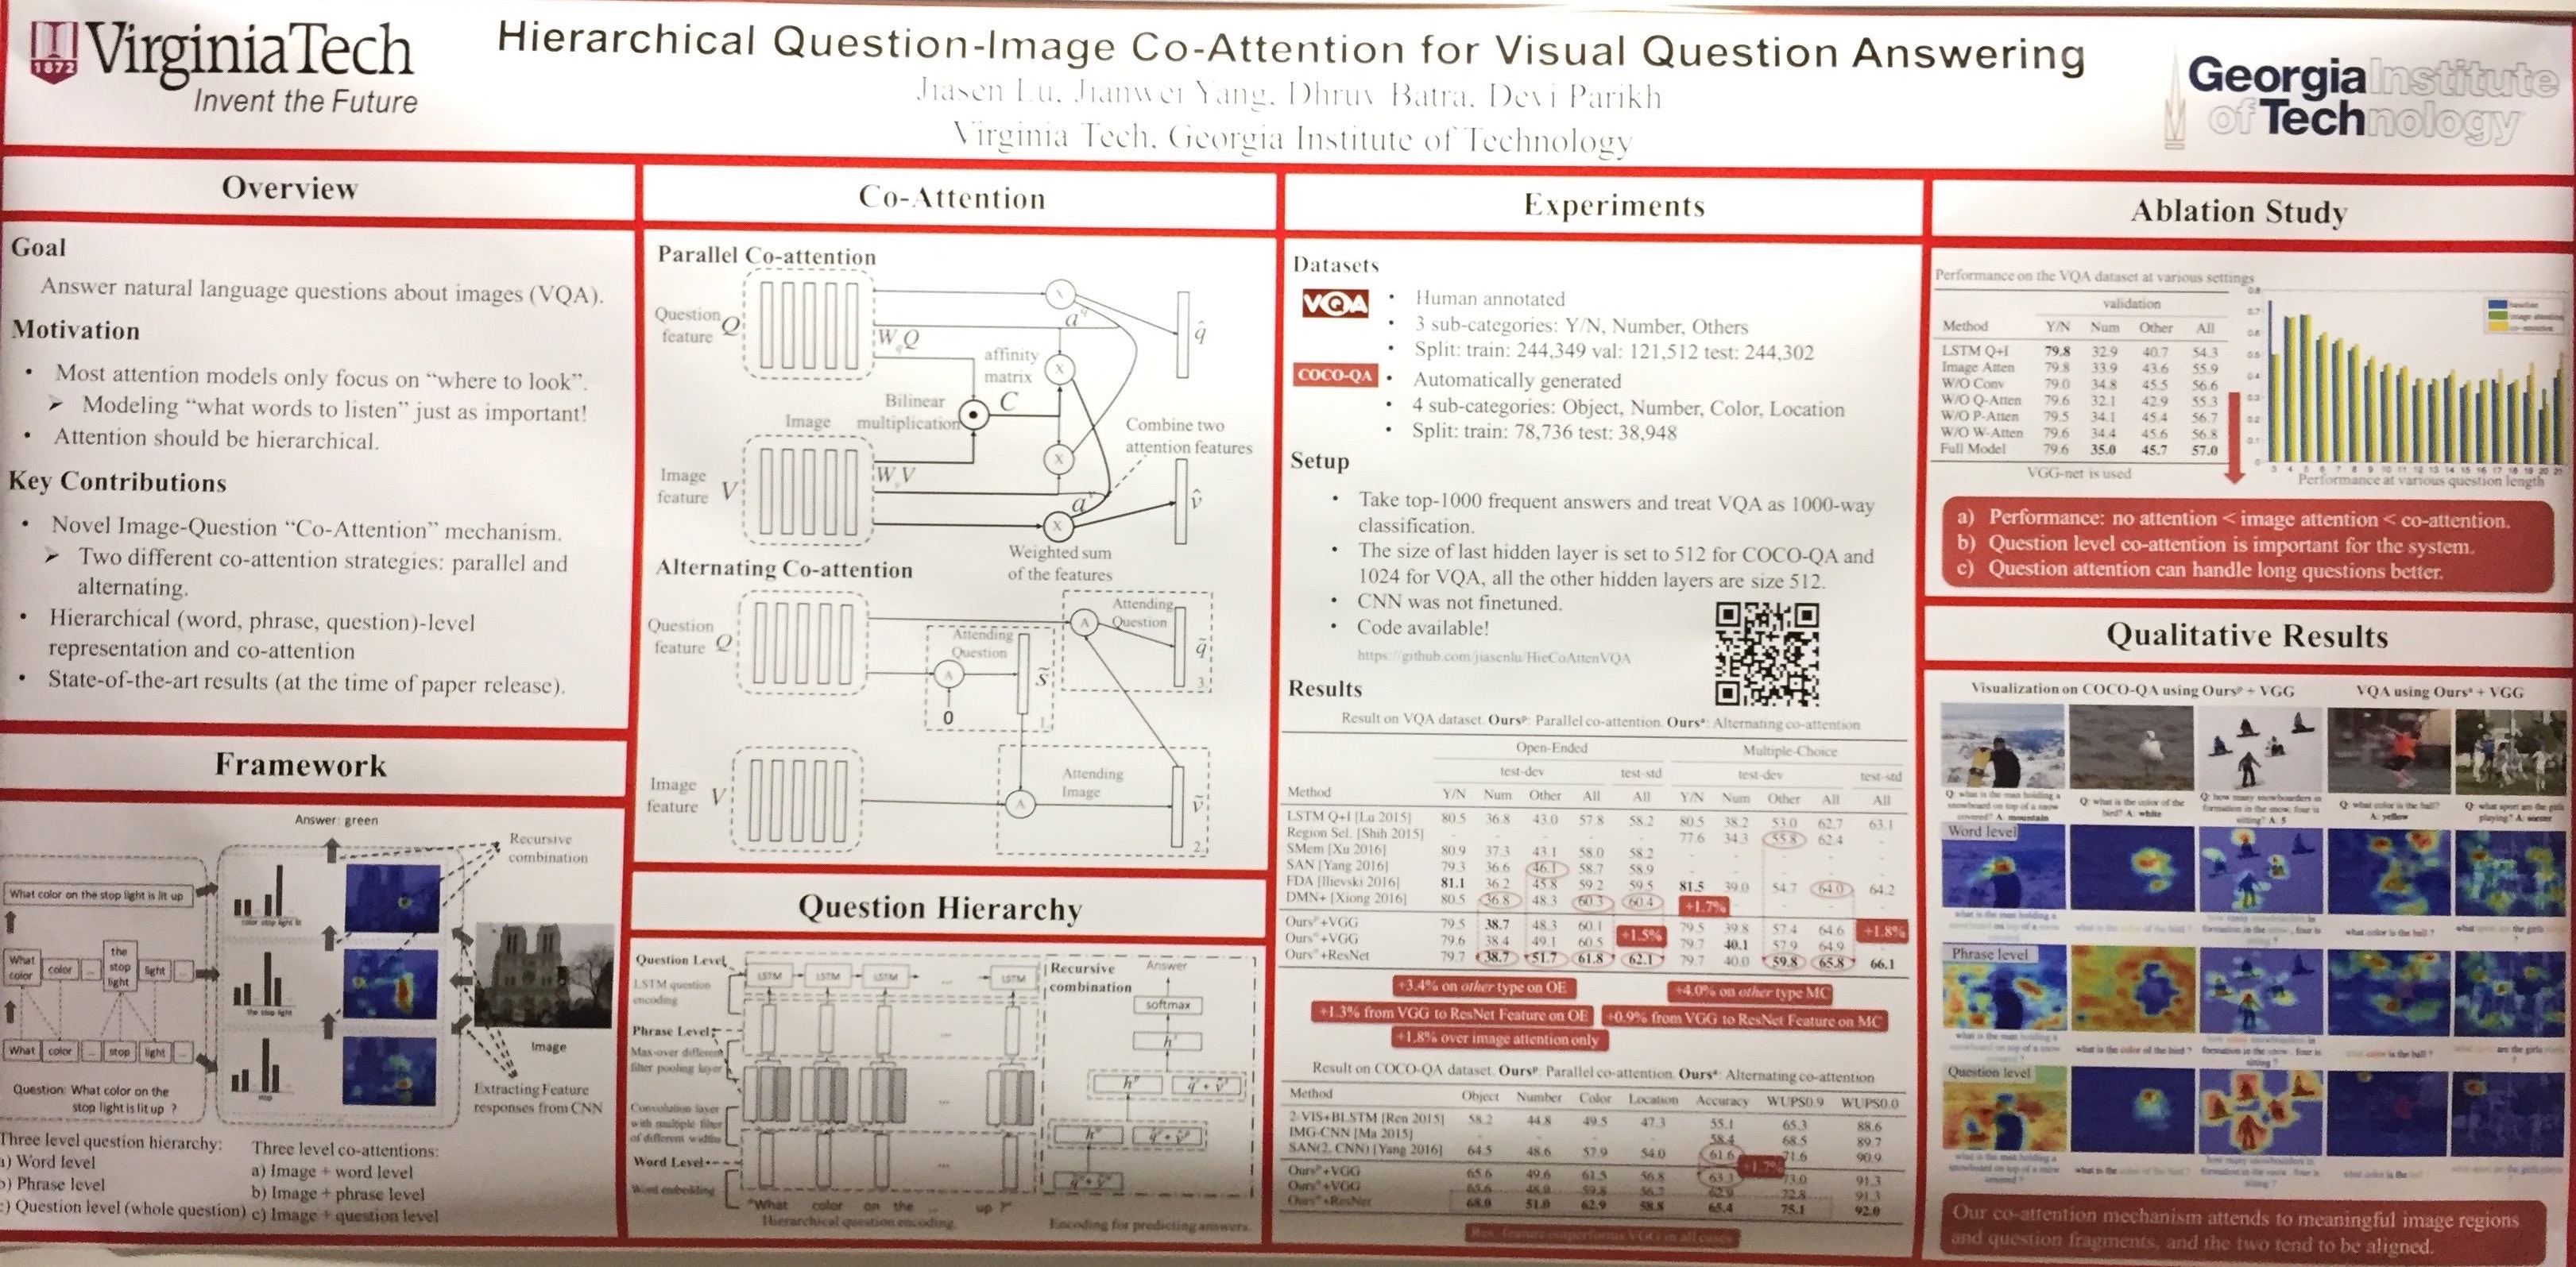 Lu_Hierarchical_Question-Image_Co-Attention_for_Visual_Question_Answering.jpg